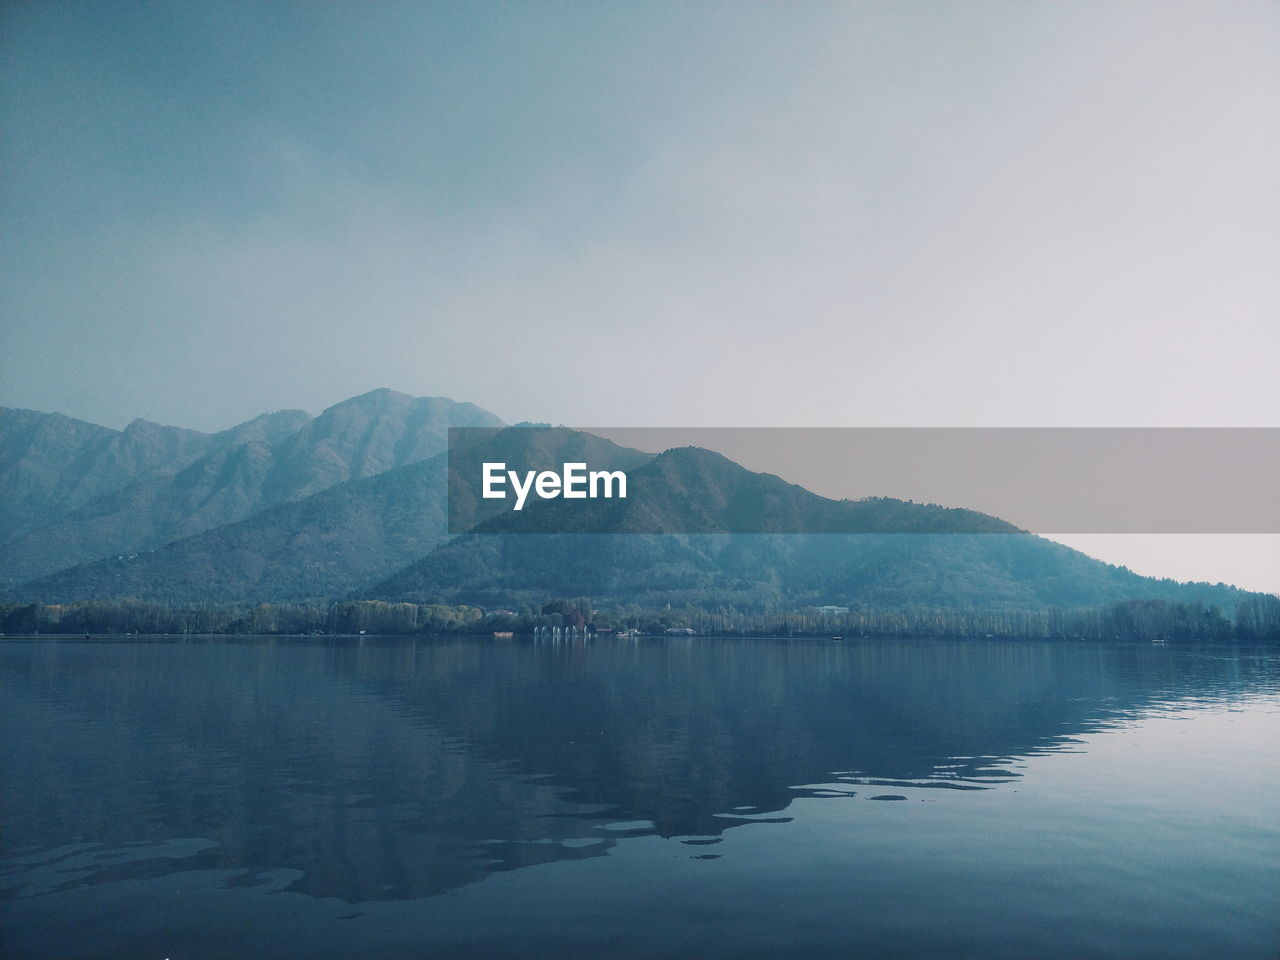 mountain, sky, water, scenics - nature, beauty in nature, tranquility, tranquil scene, reflection, waterfront, mountain range, lake, nature, no people, day, copy space, non-urban scene, idyllic, clear sky, outdoors